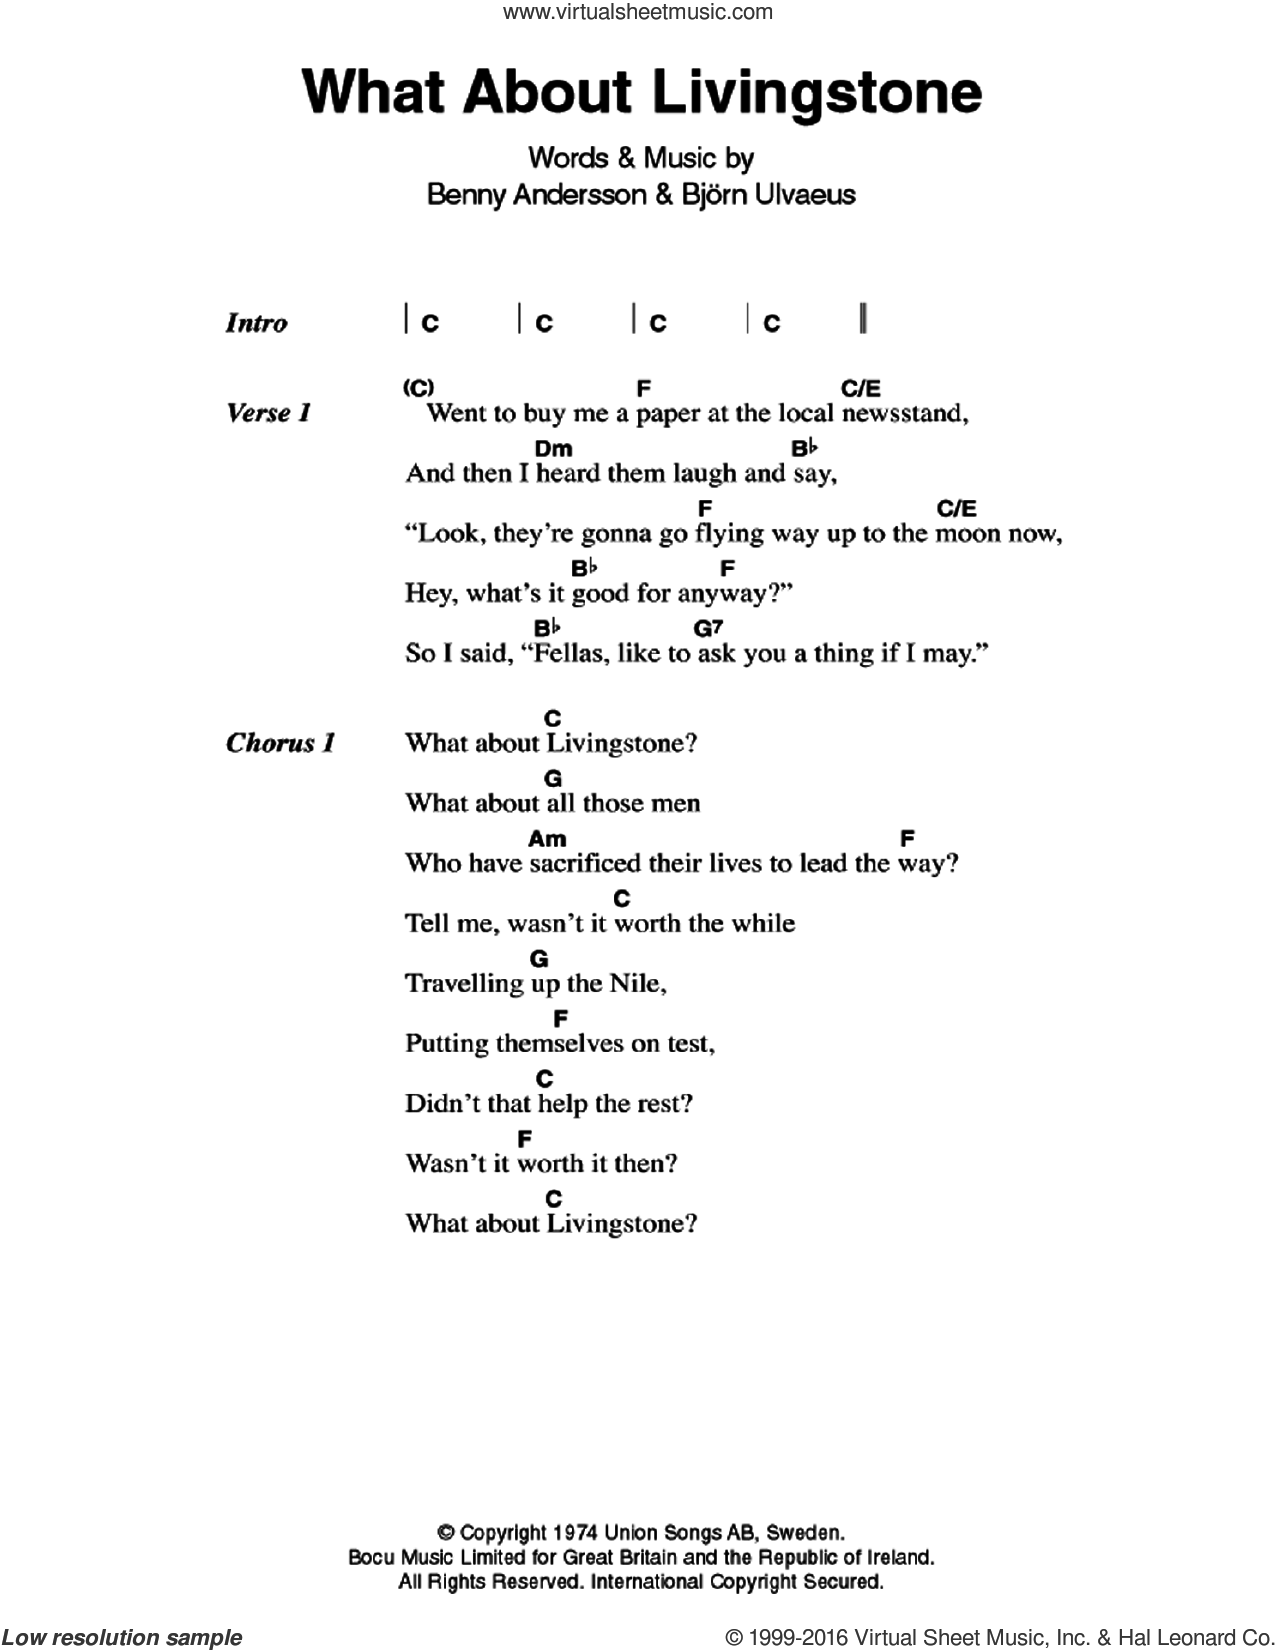 What About Livingstone sheet music for guitar (chords) by Bjorn Ulvaeus